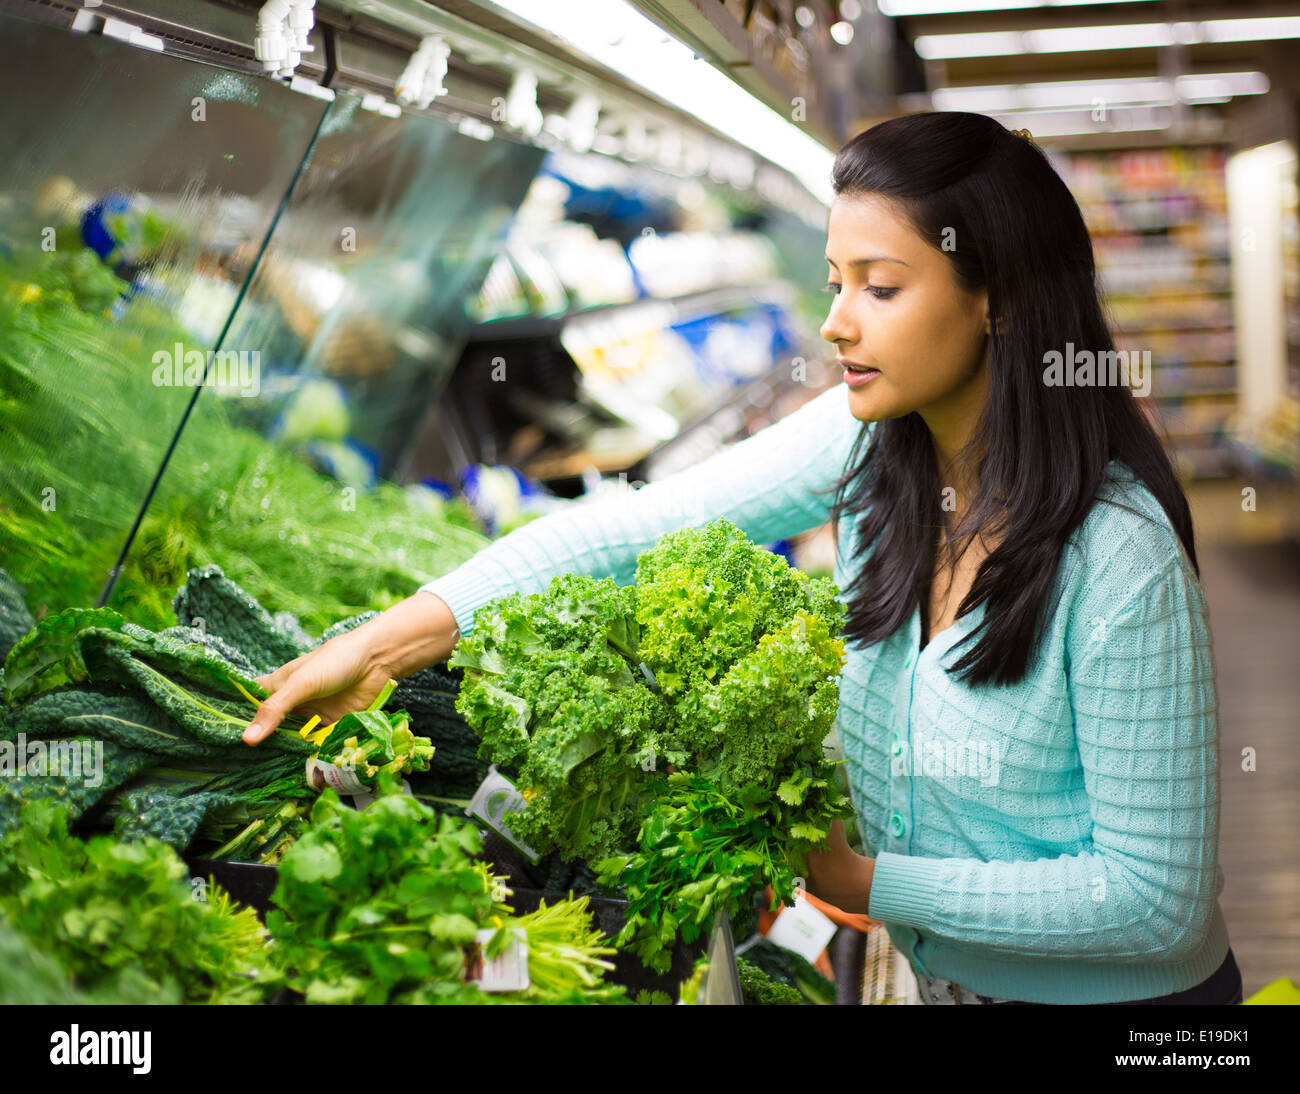 Closeup portrait, beautiful, pretty young woman in sweater picking up, choosing green leafy vegetables in grocery store - Stock Image